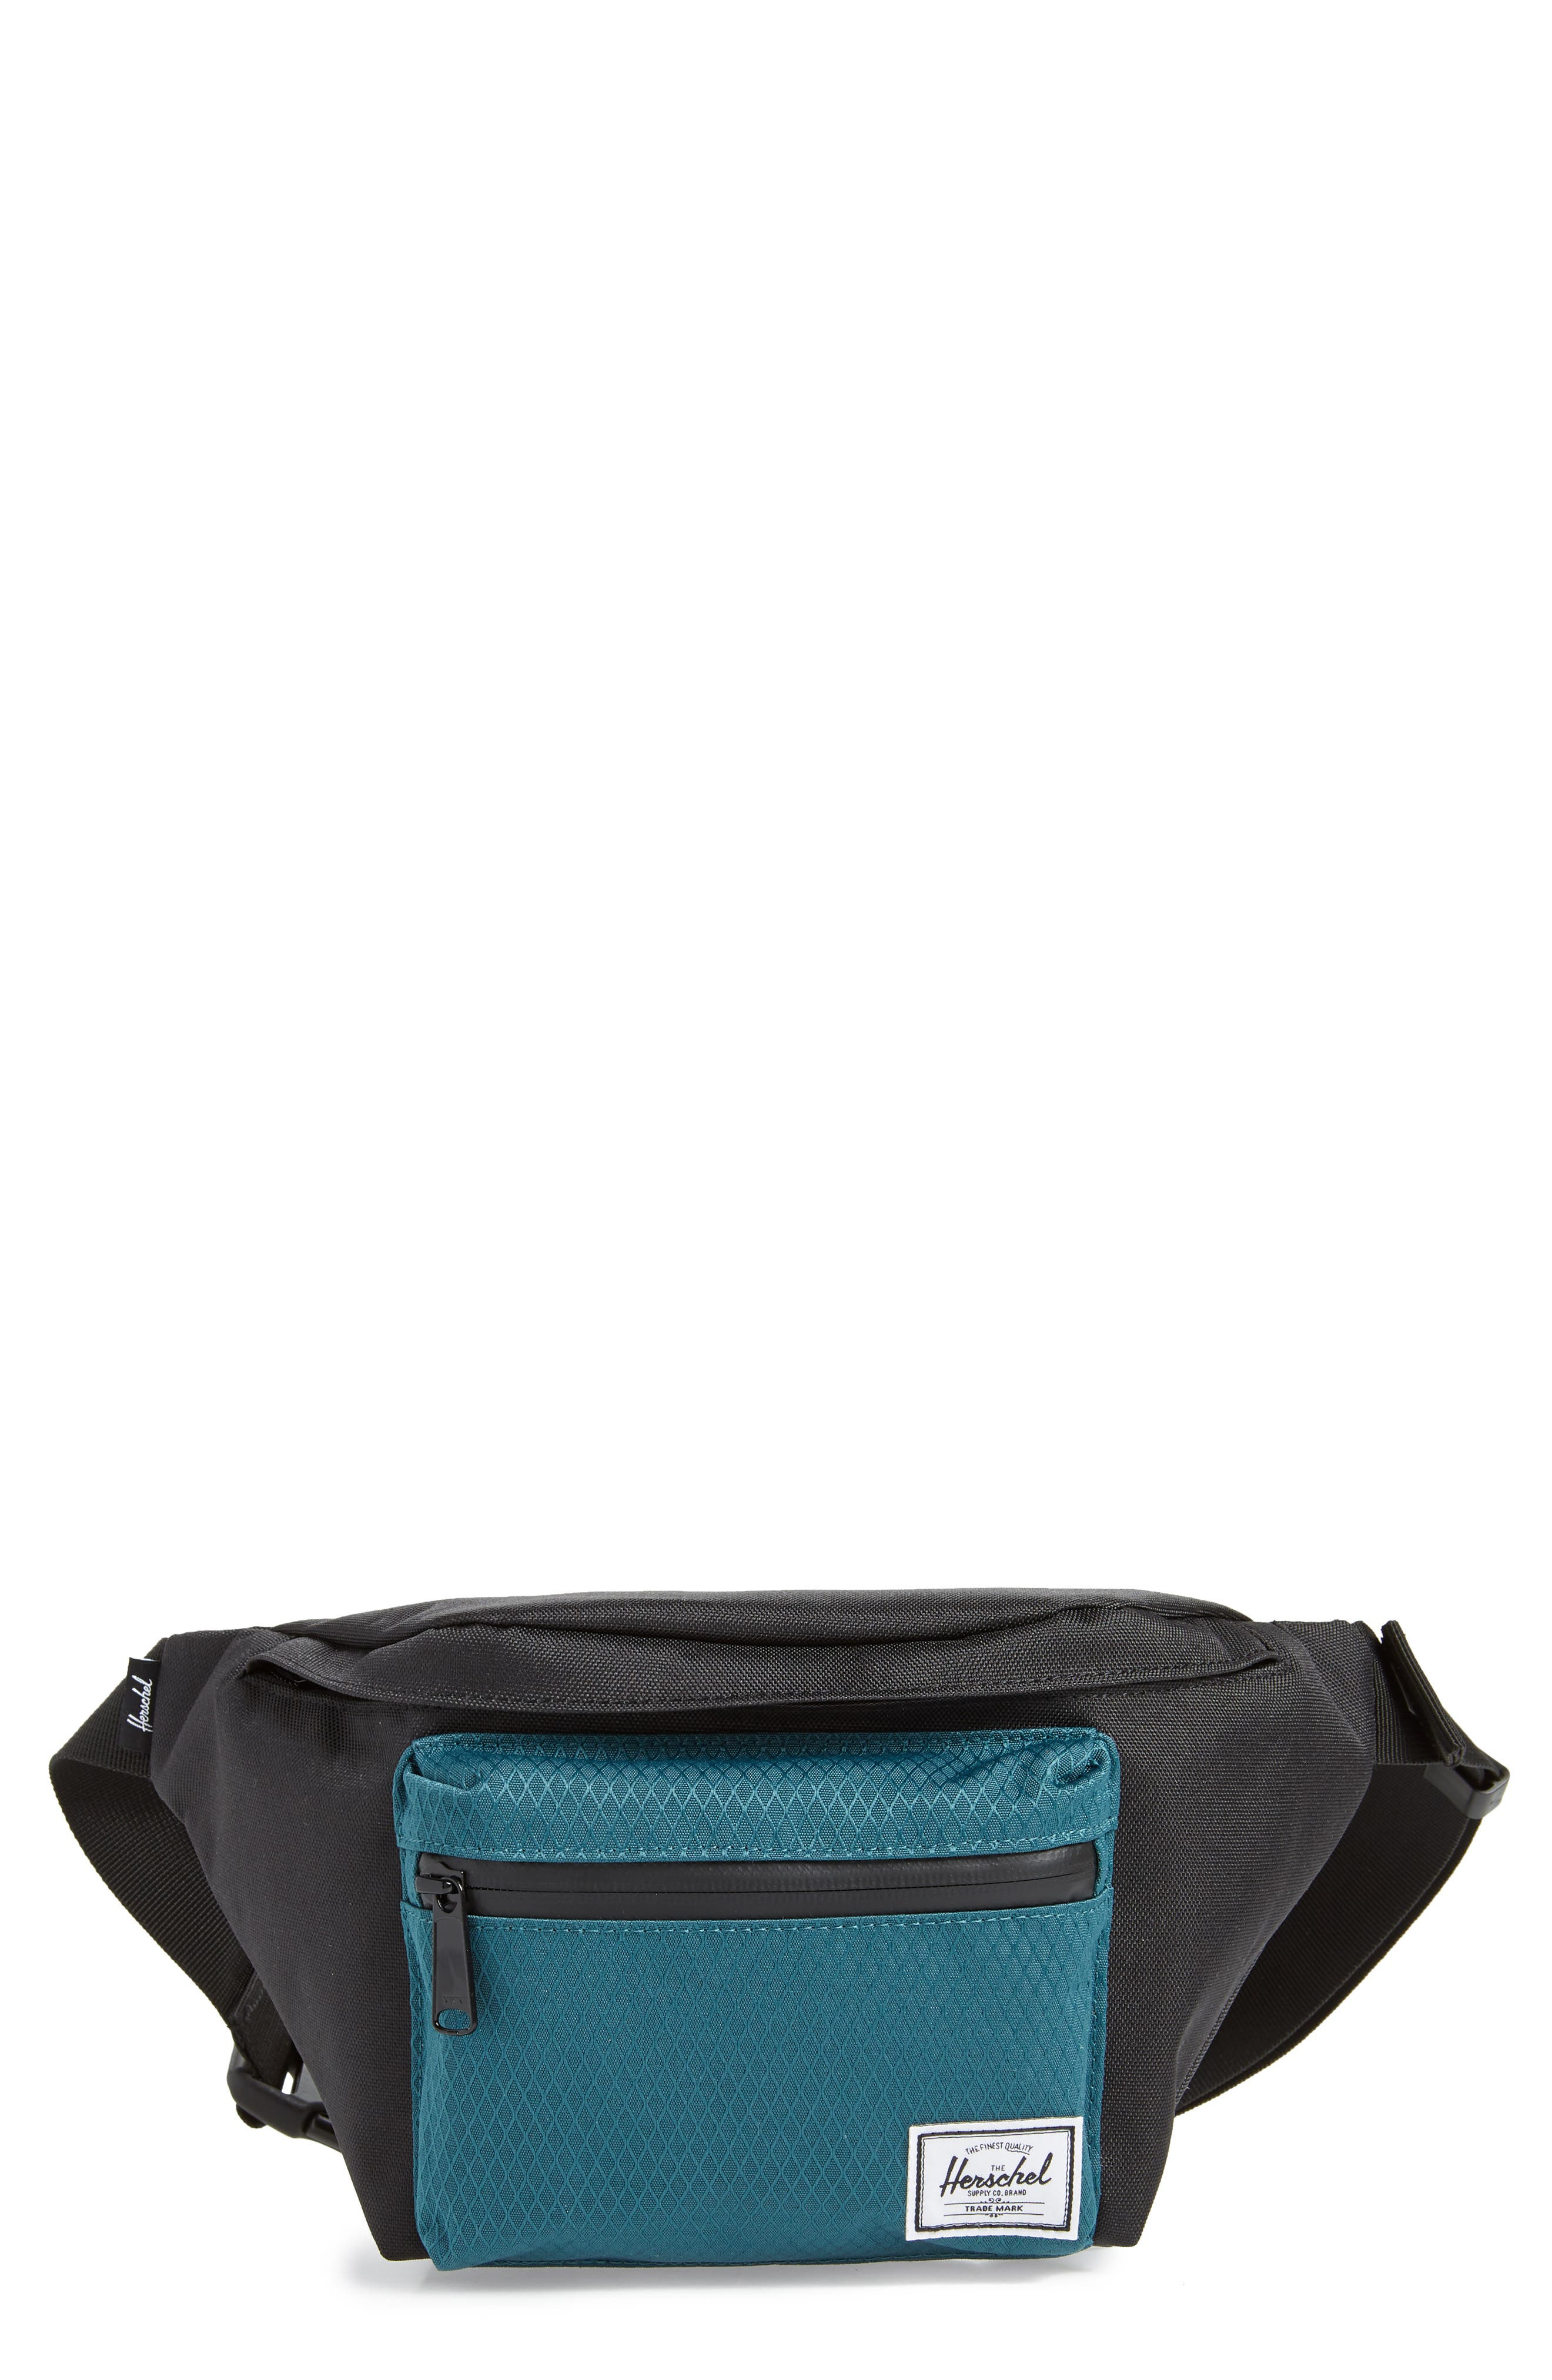 'Seventeen' Belt Bag,                         Main,                         color, BLACK/ DEEP TEAL